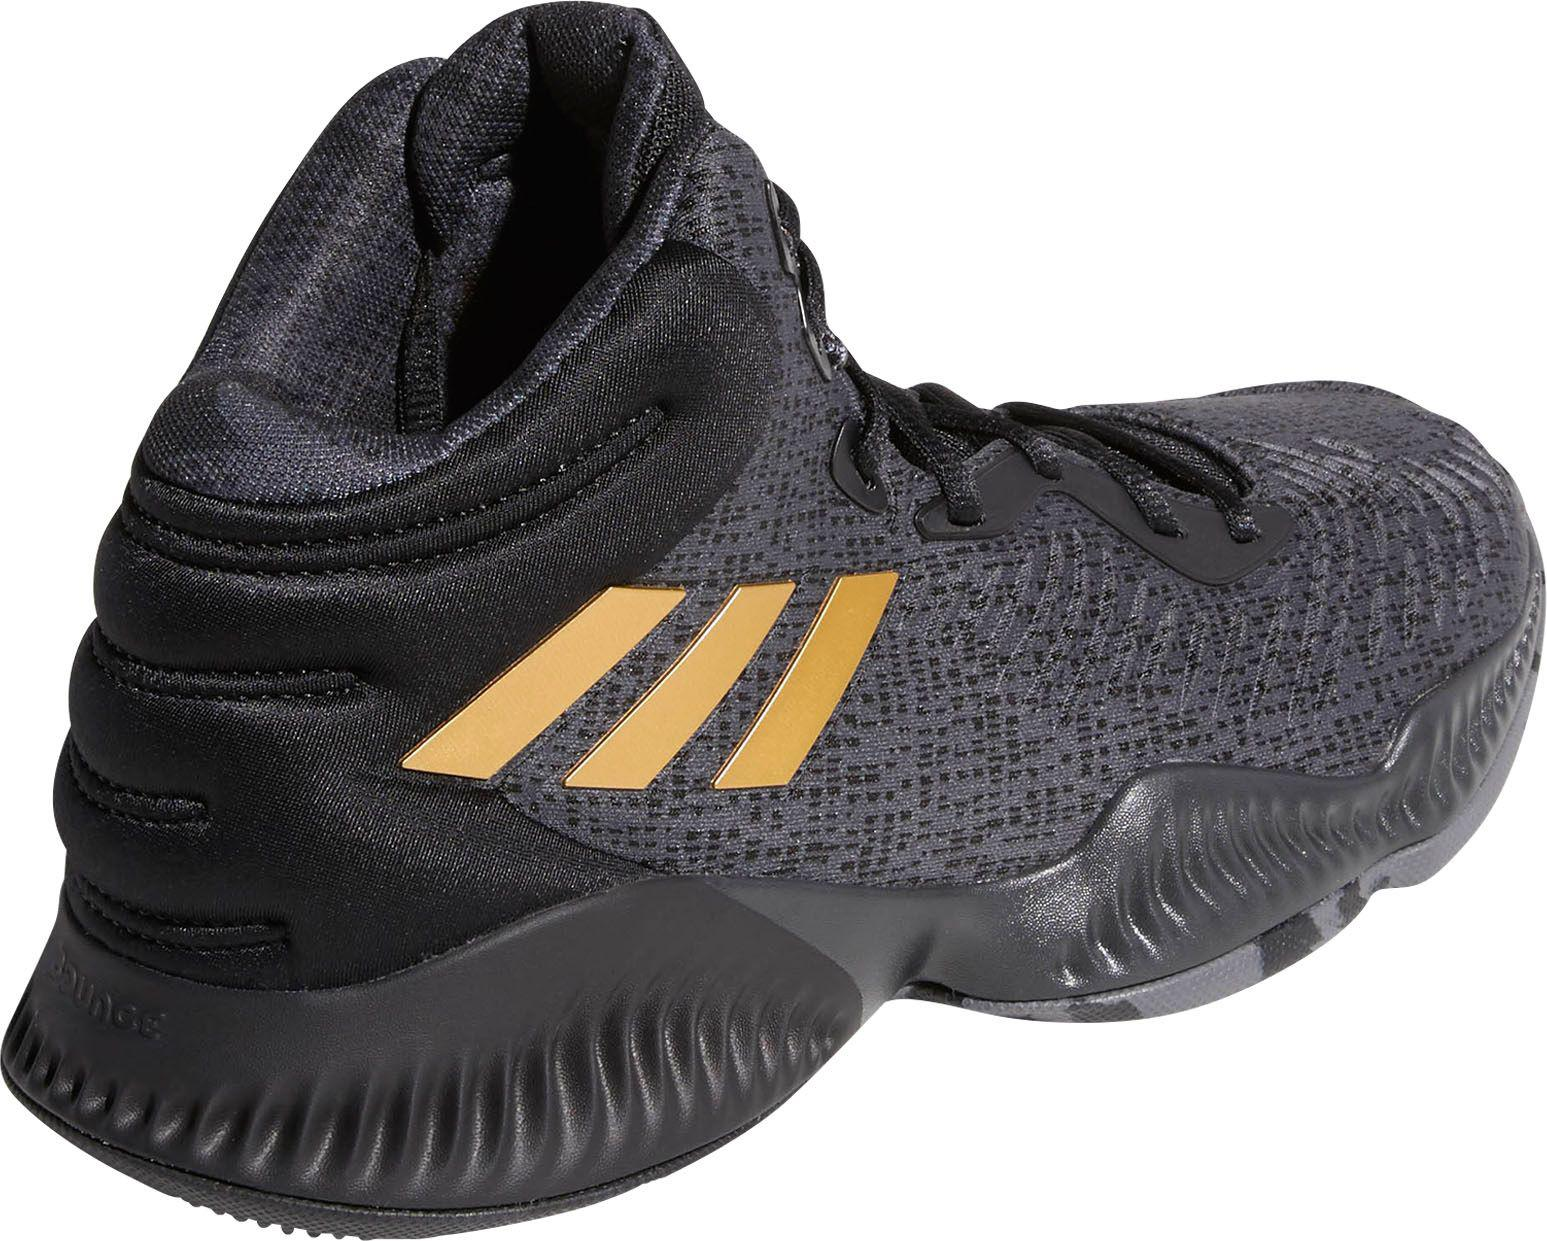 timeless design f6461 d4631 Lyst - adidas Mad Bounce 2018 Basketball Shoes in Black for Men